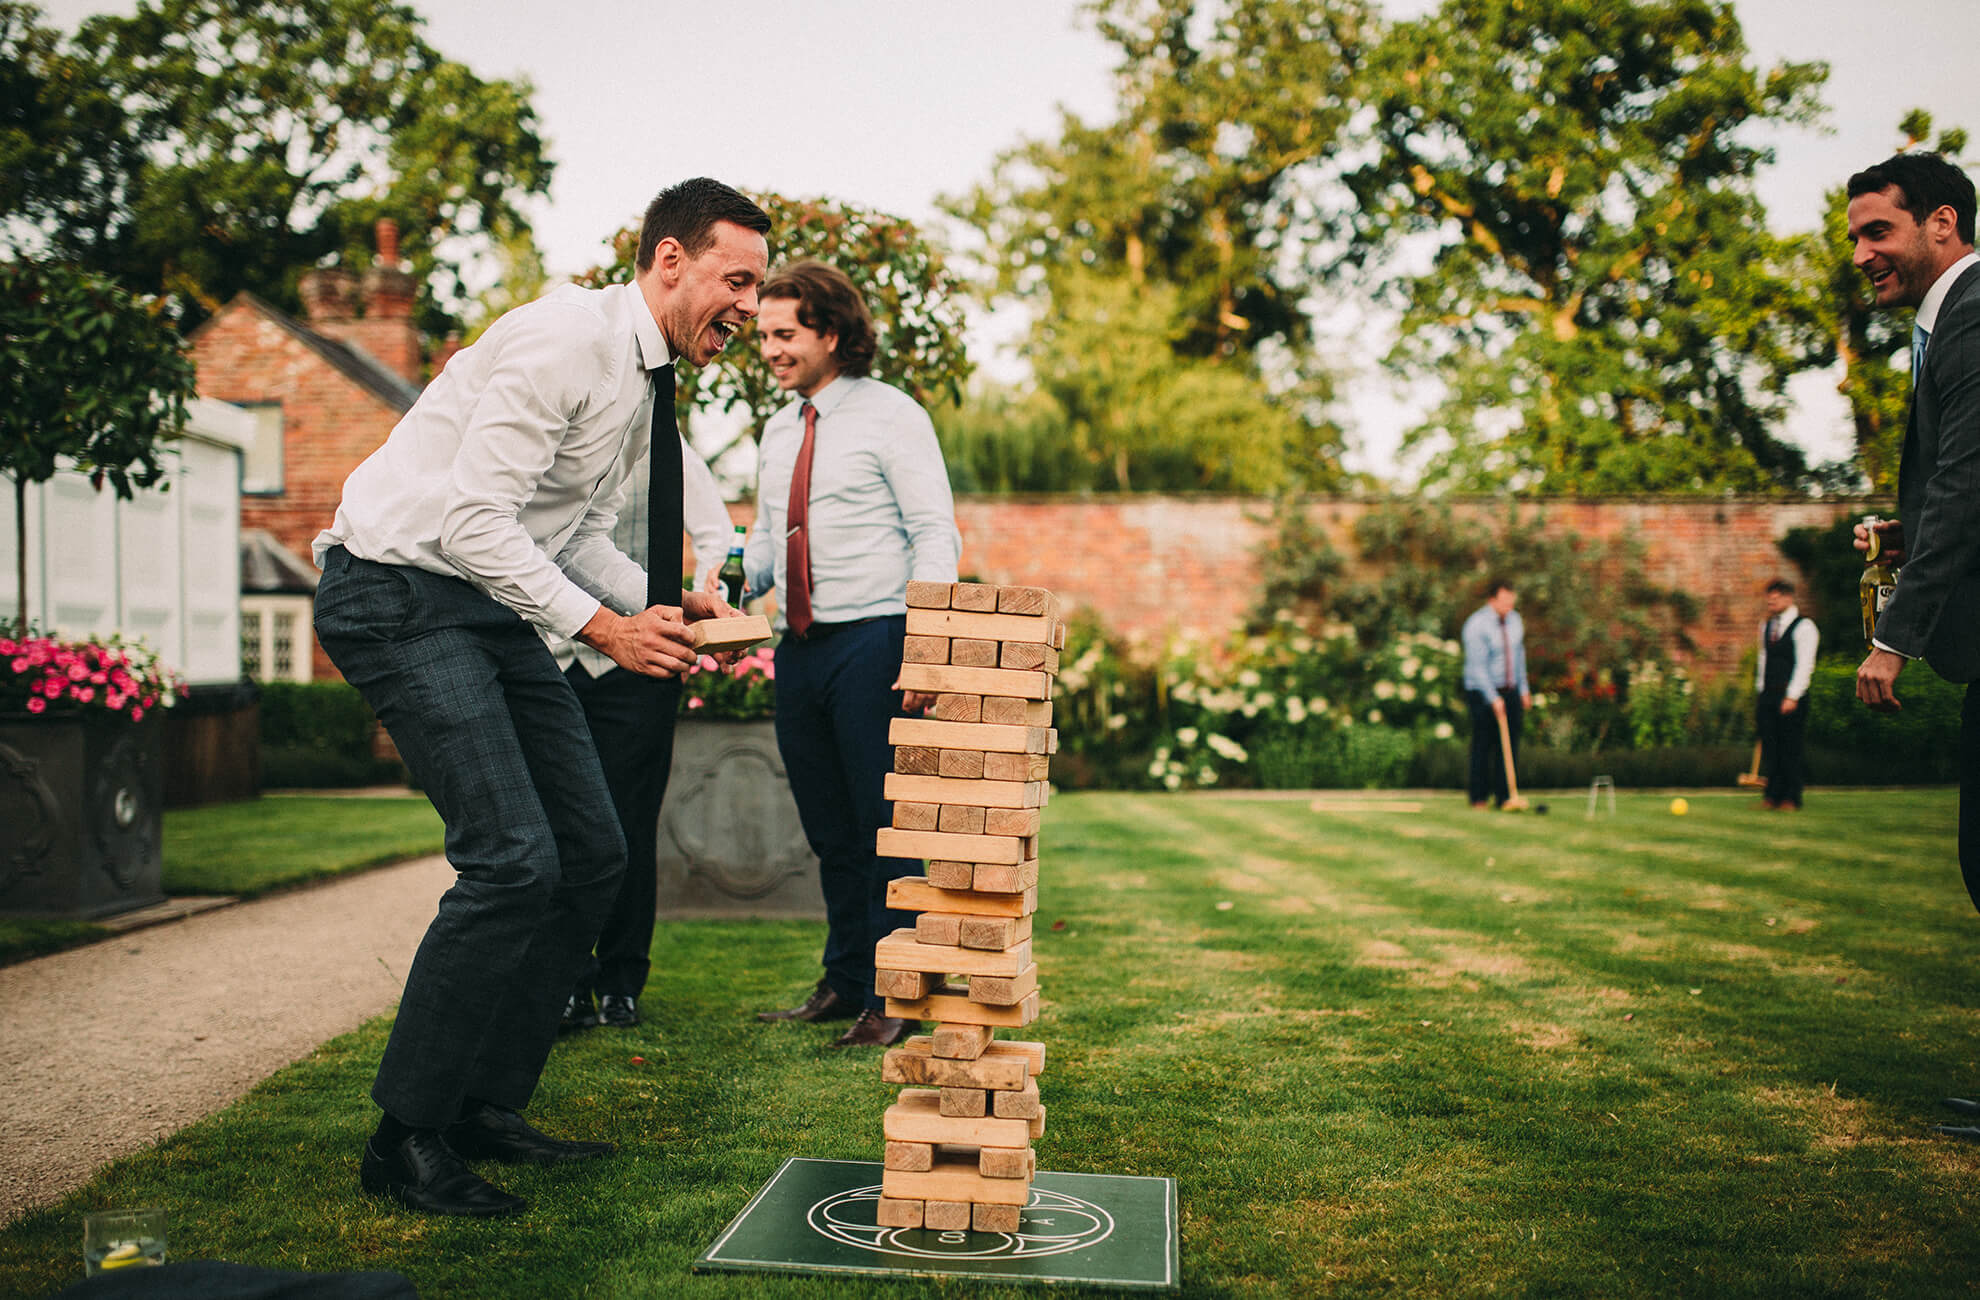 The gardens at Combermere Abbey are perfect for wedding guests to enjoy a game of giant jenga on your wedding day